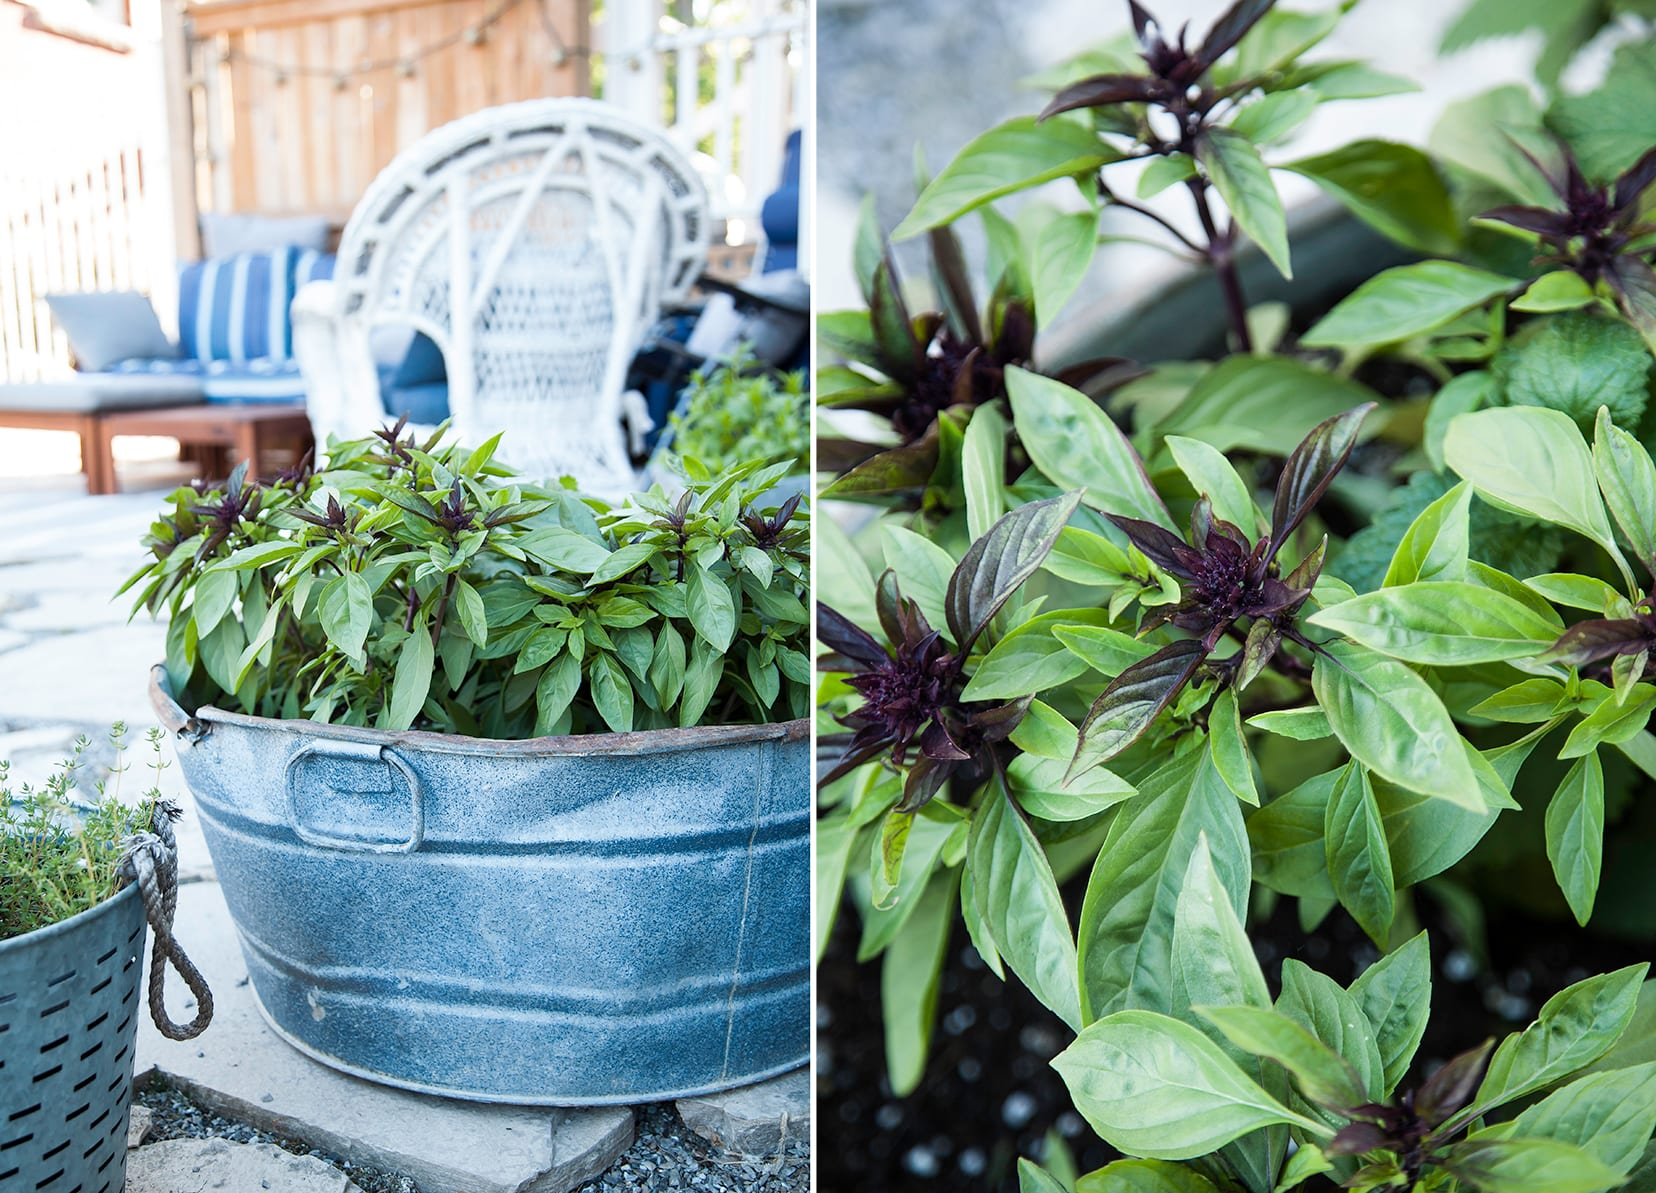 Two images show Thai basil growing in a galvanized metal container outside.